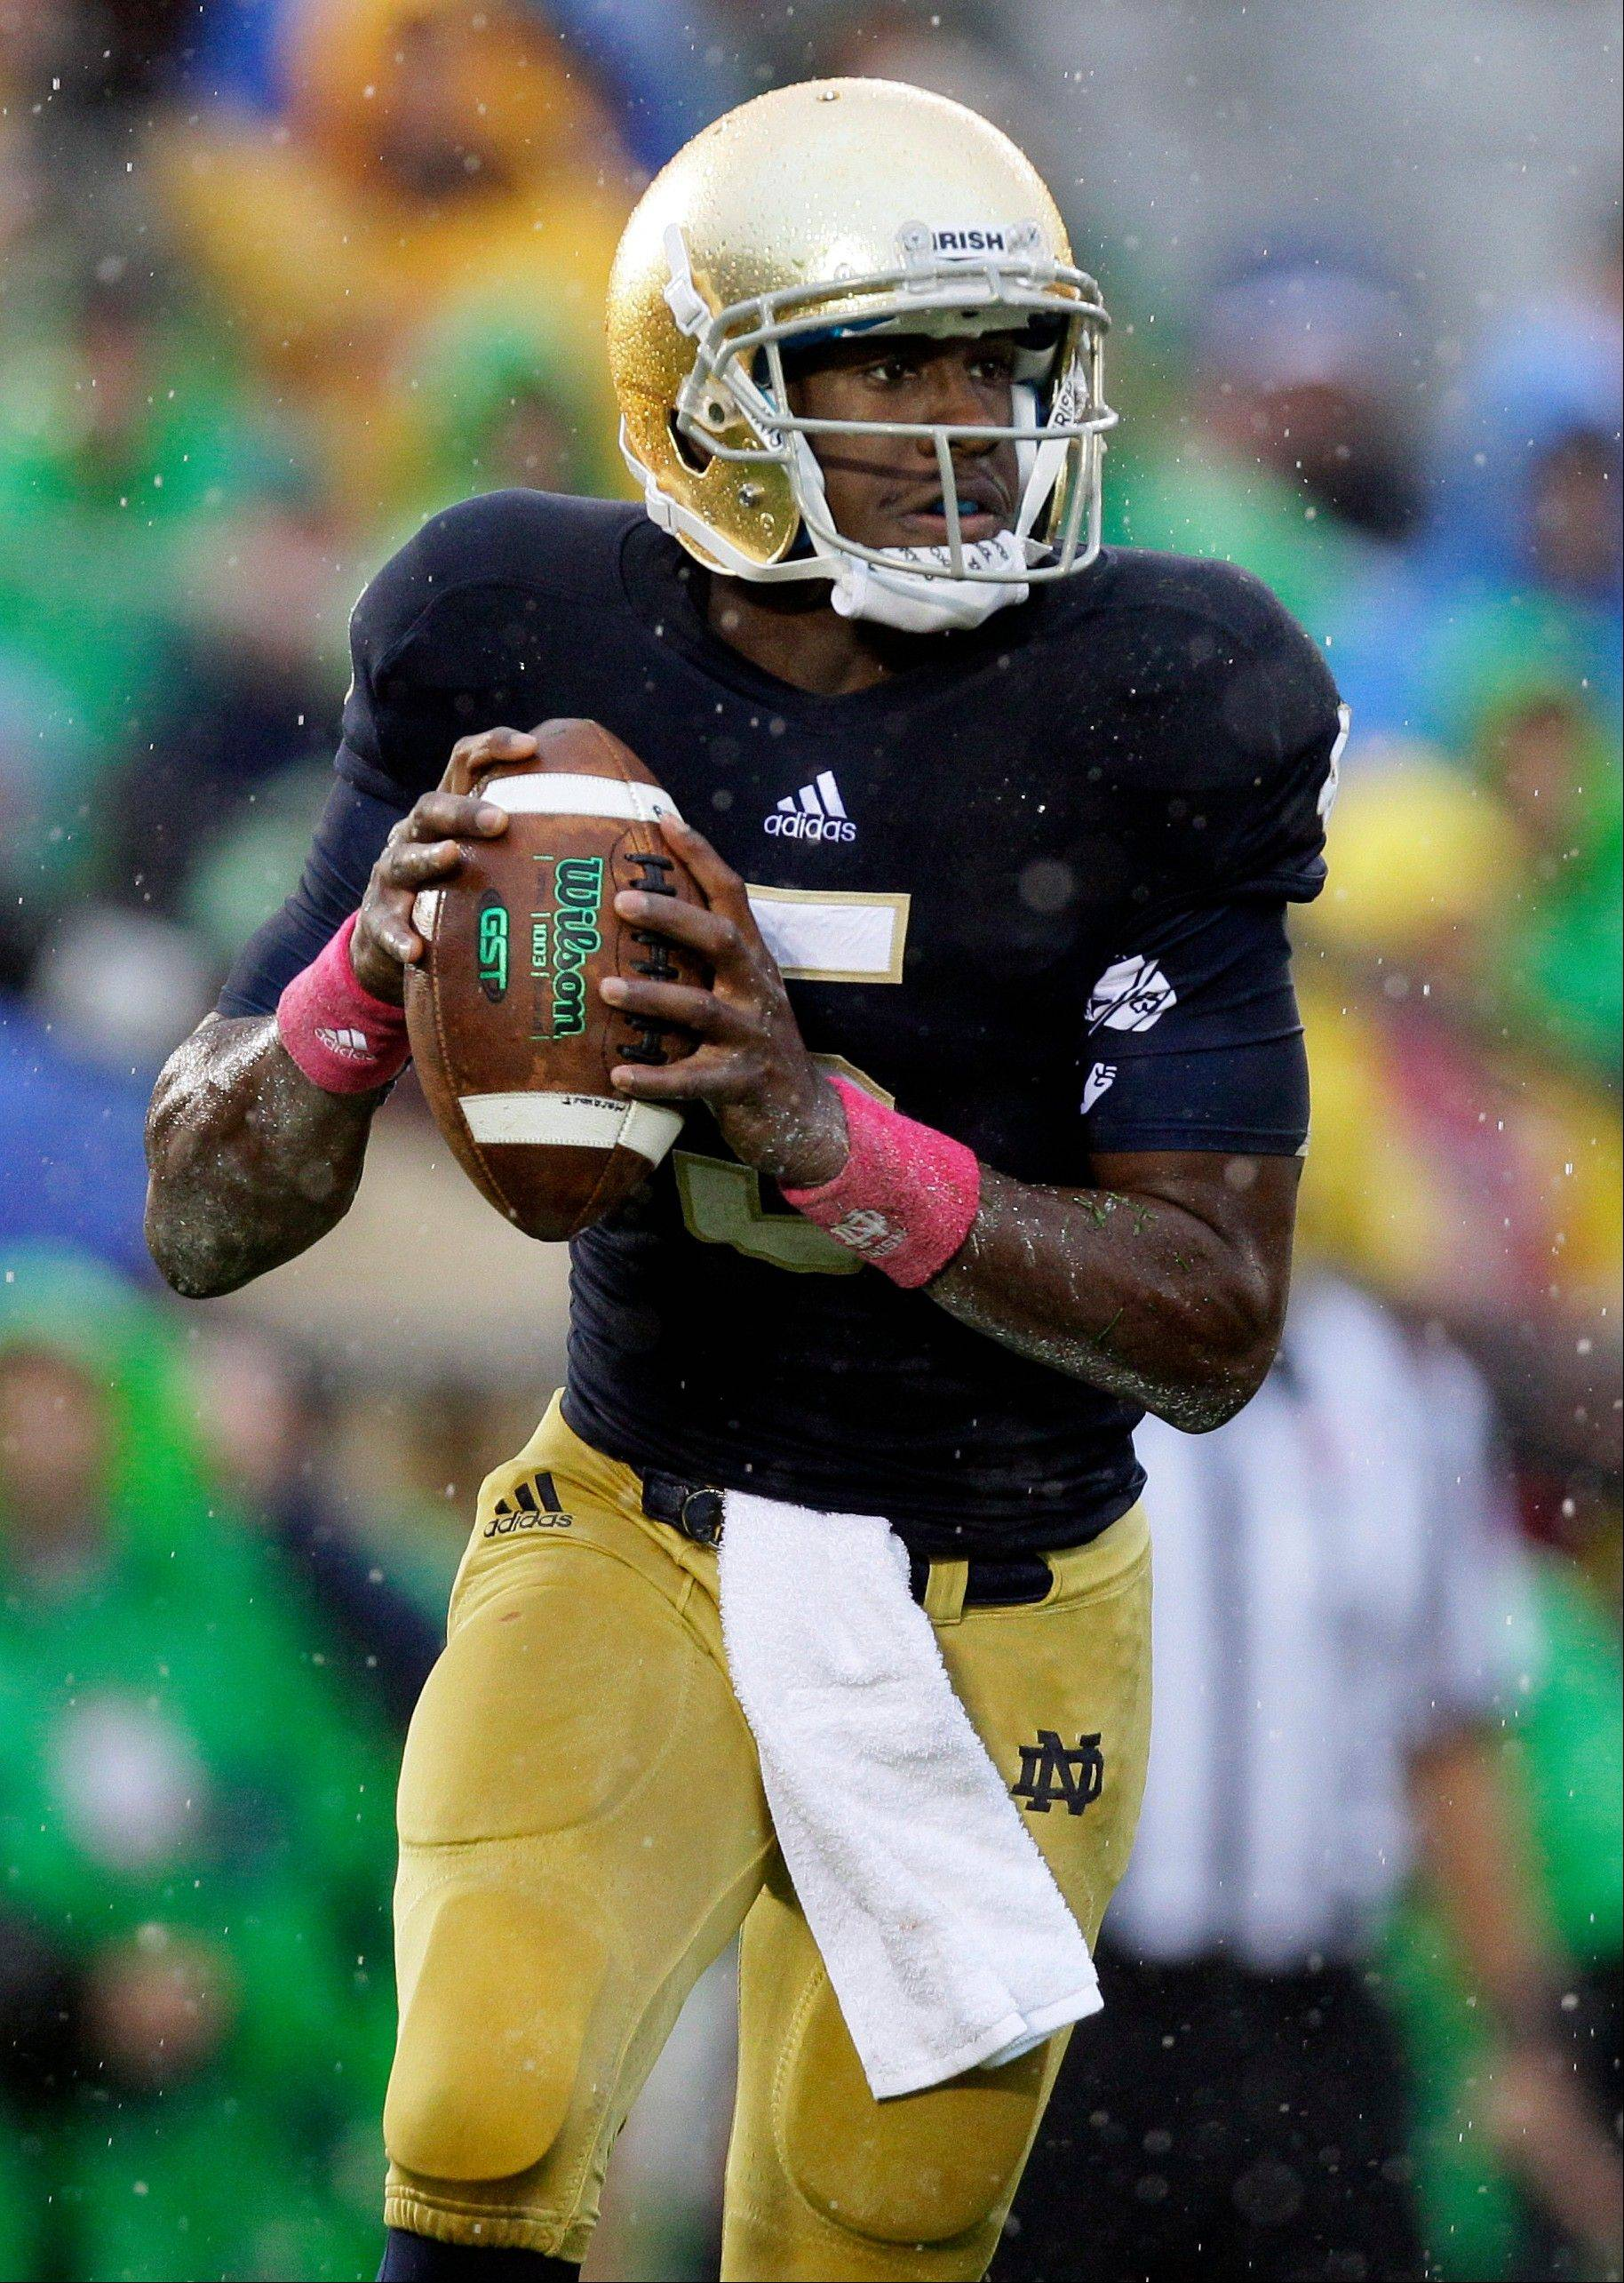 Notre Dame quarterback Everett Golson rolls out to pass during the first half last Saturday�s game against Stanford in South Bend, Ind. Golson sustained a concussion on a helmet-to-helmet hit but has been cleared to play this week. Whether he will is still uncertain.